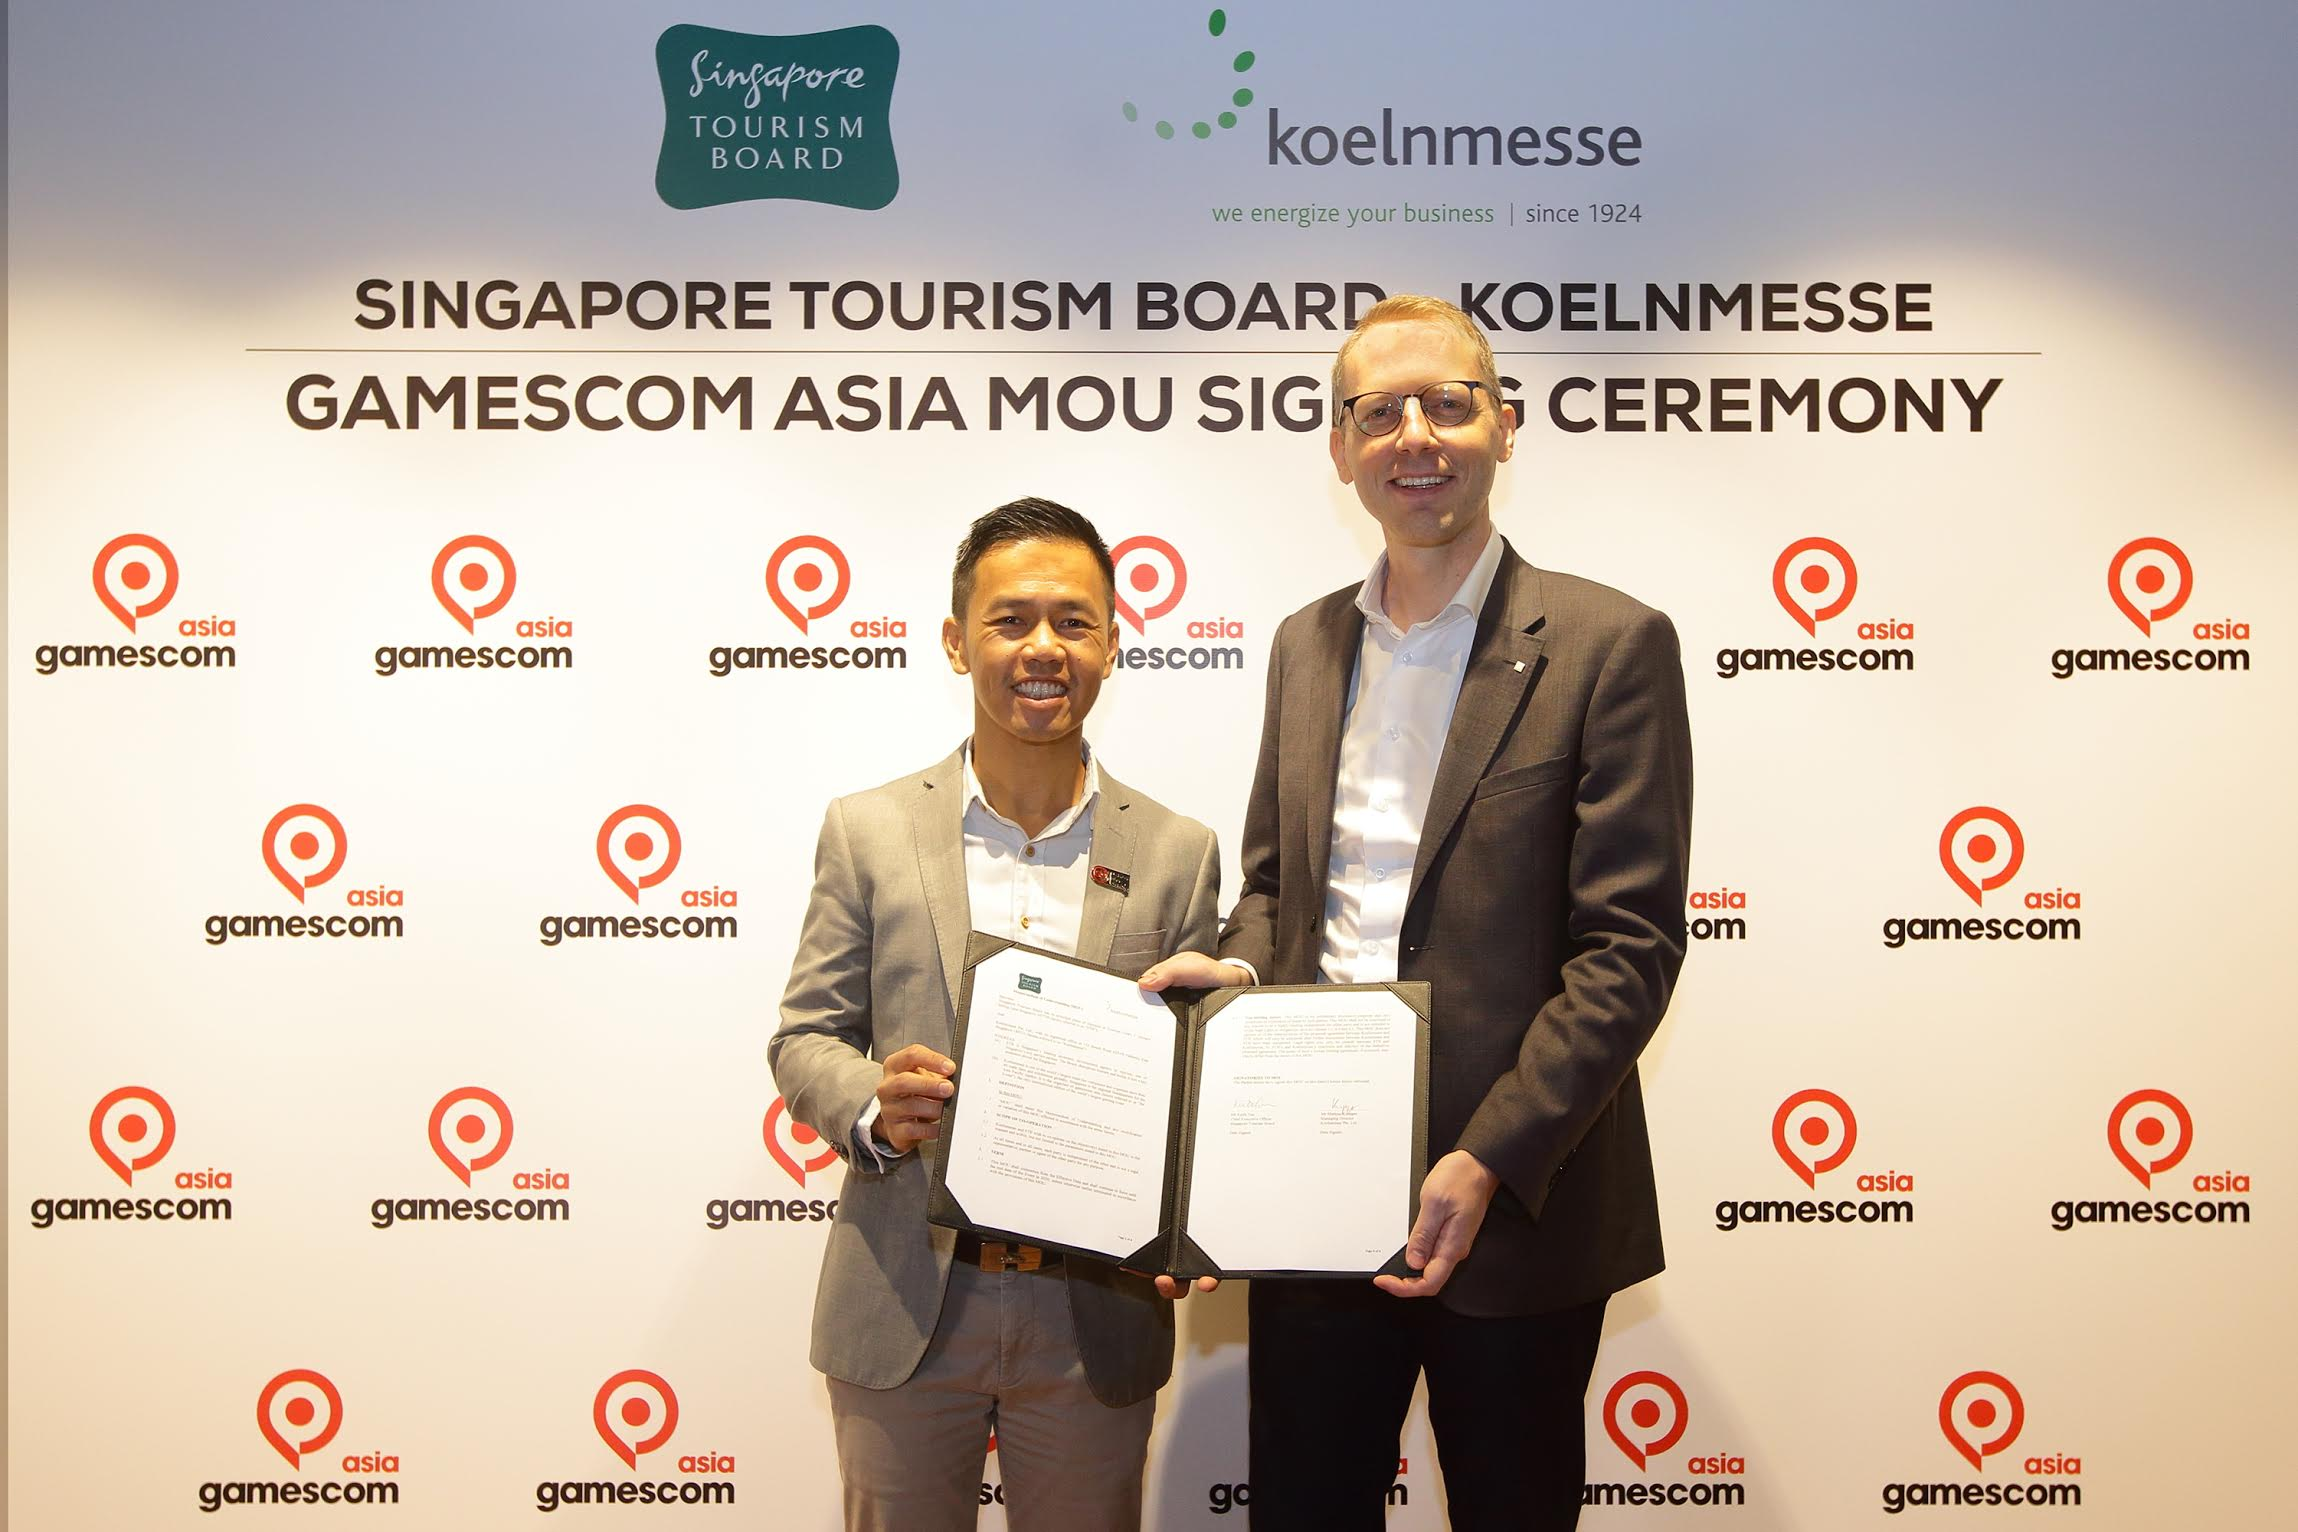 Mr Keith Tan, Chief Executive of Singapore Tourism Board, and Mr Mathias Kuepper, Managing Director of Koelnmesse Singapore, signed the Memorandum of Understanding to mark a new partnership for the inaugural Asian edition of gamescom. Photo courtesy: STB